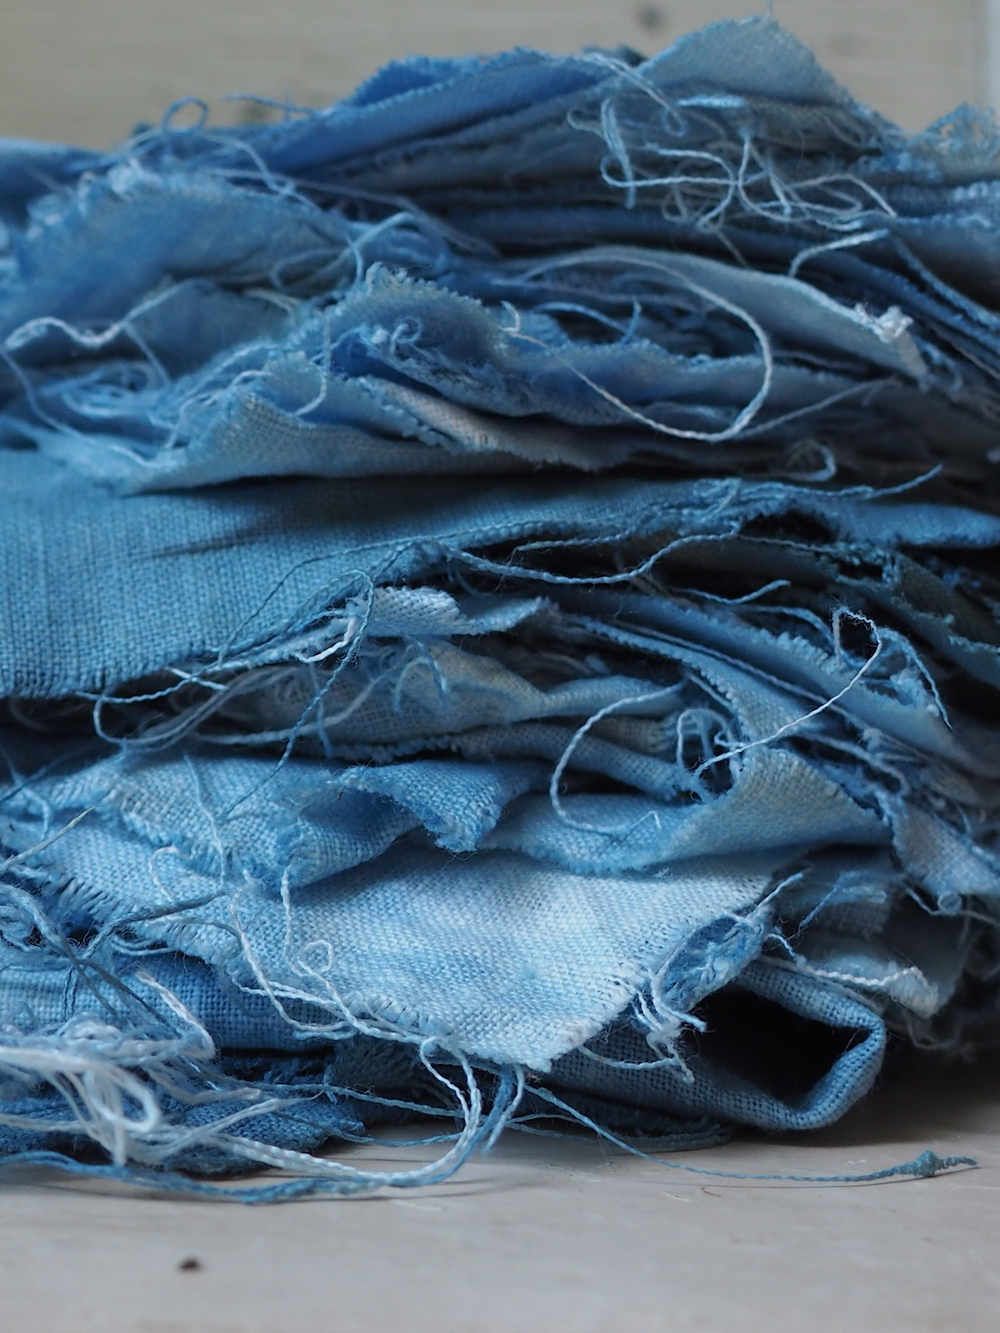 Indigo dyed linen. Naturally and botanically dyed fabric. Blue love. Ellie Beck Petalplum.jpeg